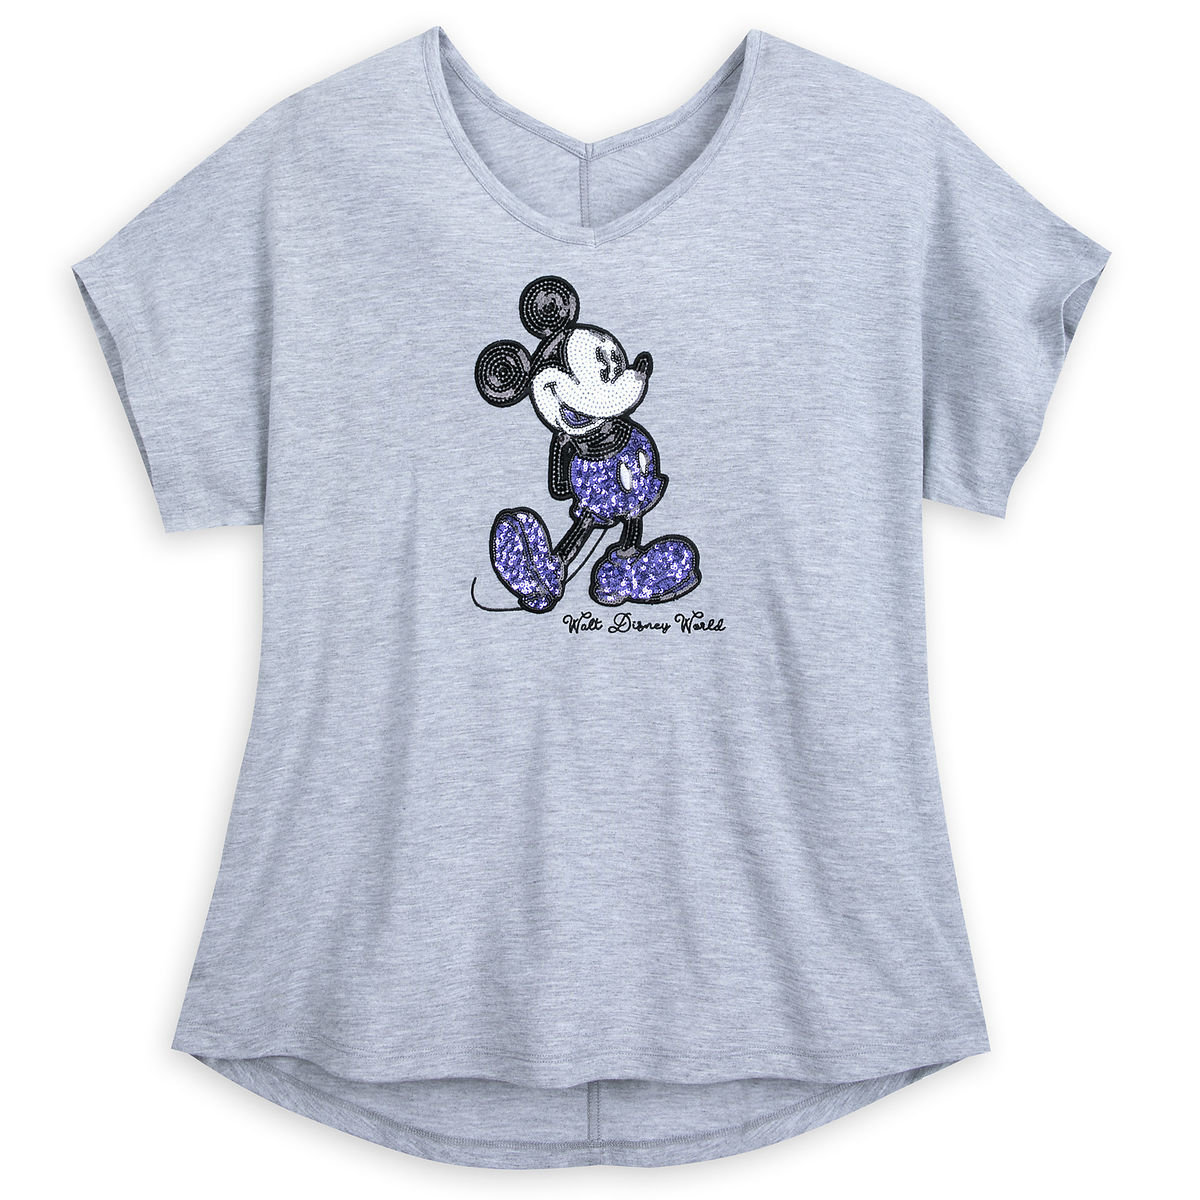 Disney Shirt for Women - Mickey Mouse Sequined - Potion Purple